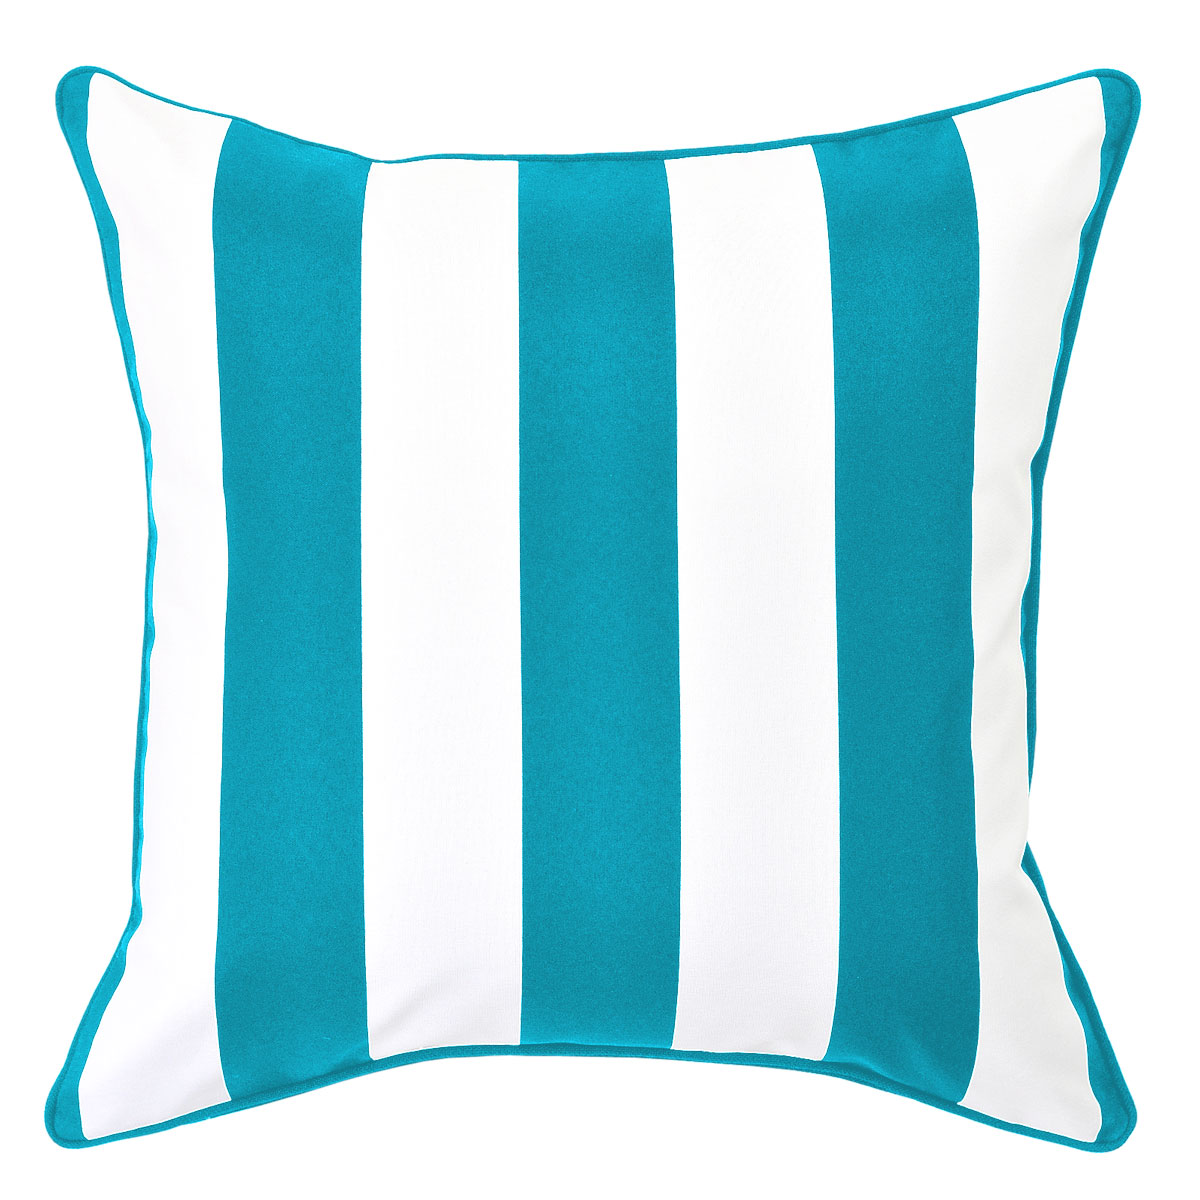 Mallacoota Turquoise Outdoor Cushion with Turquoise Piping - 50x50cm